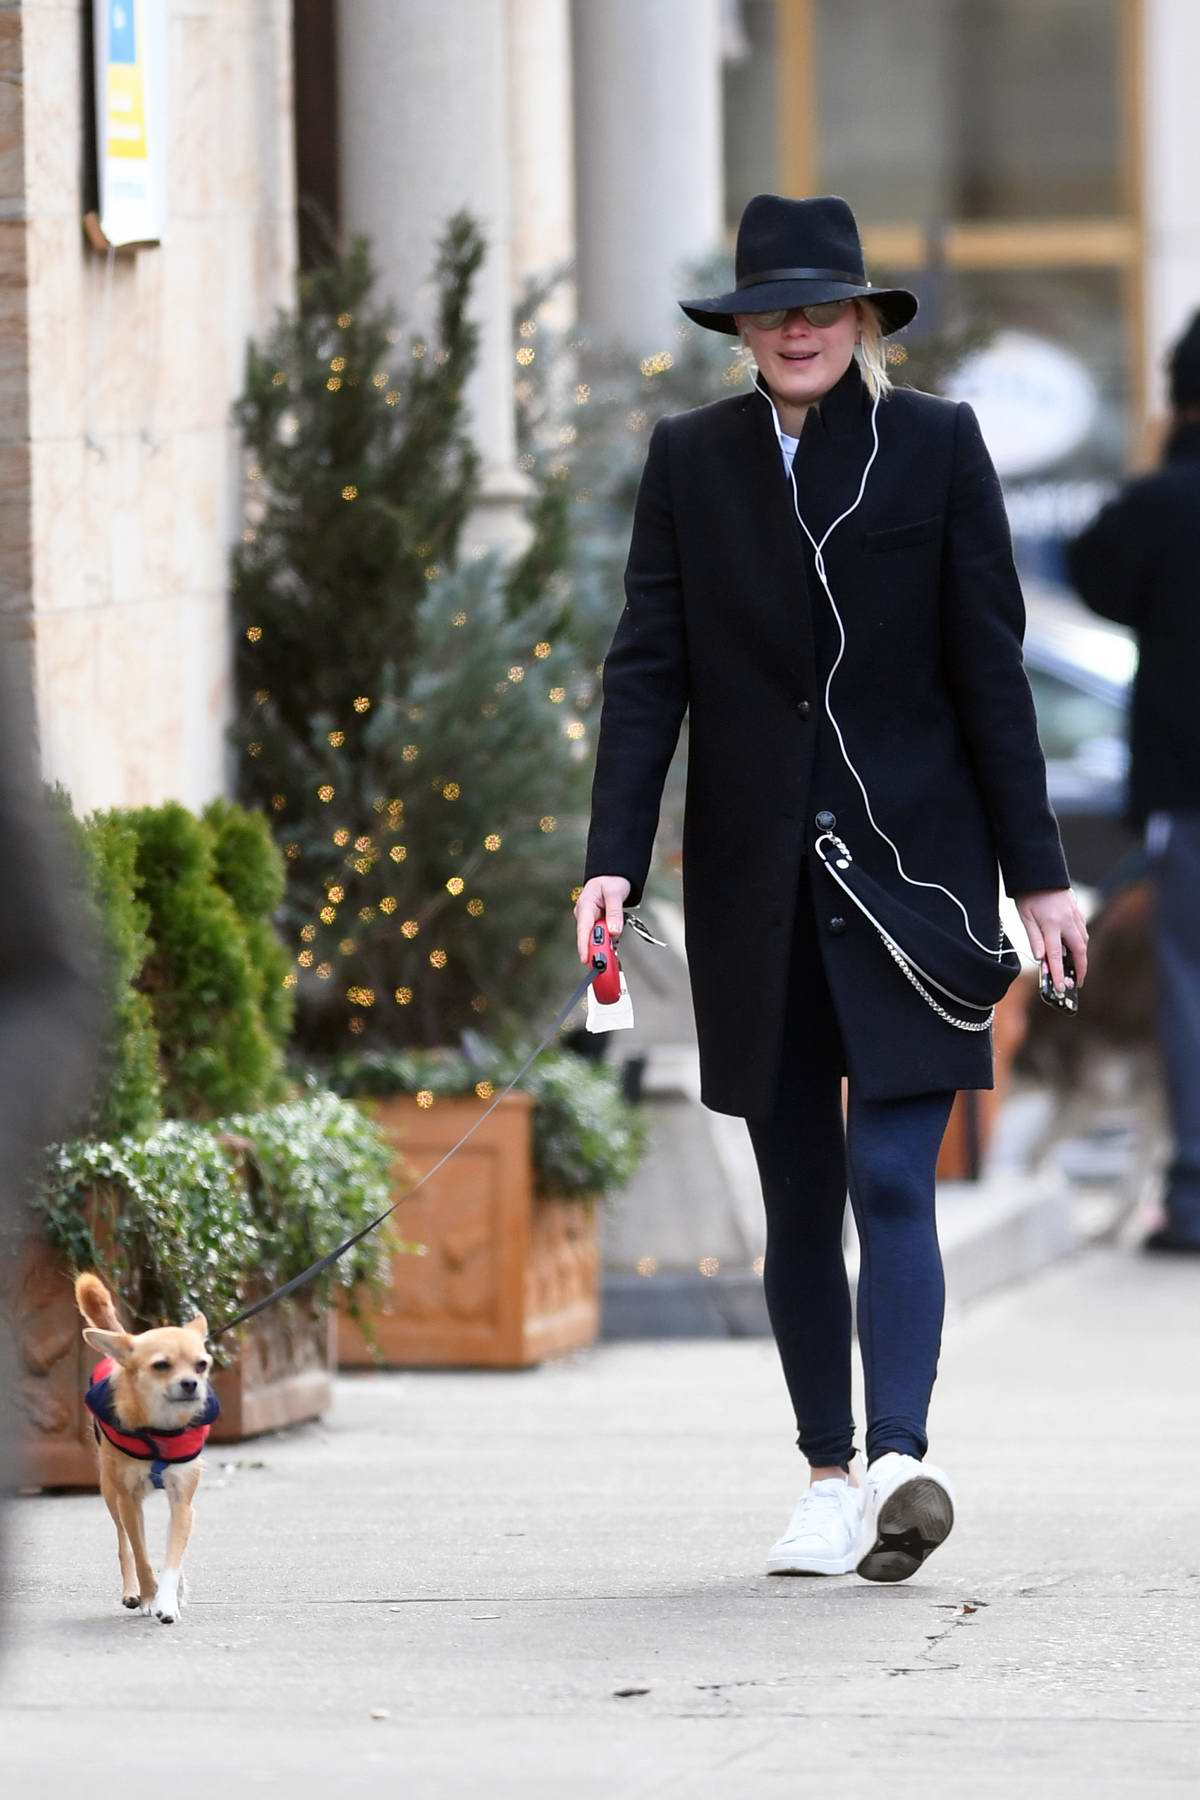 Jennifer Lawrence steps out walking her dog in New York City